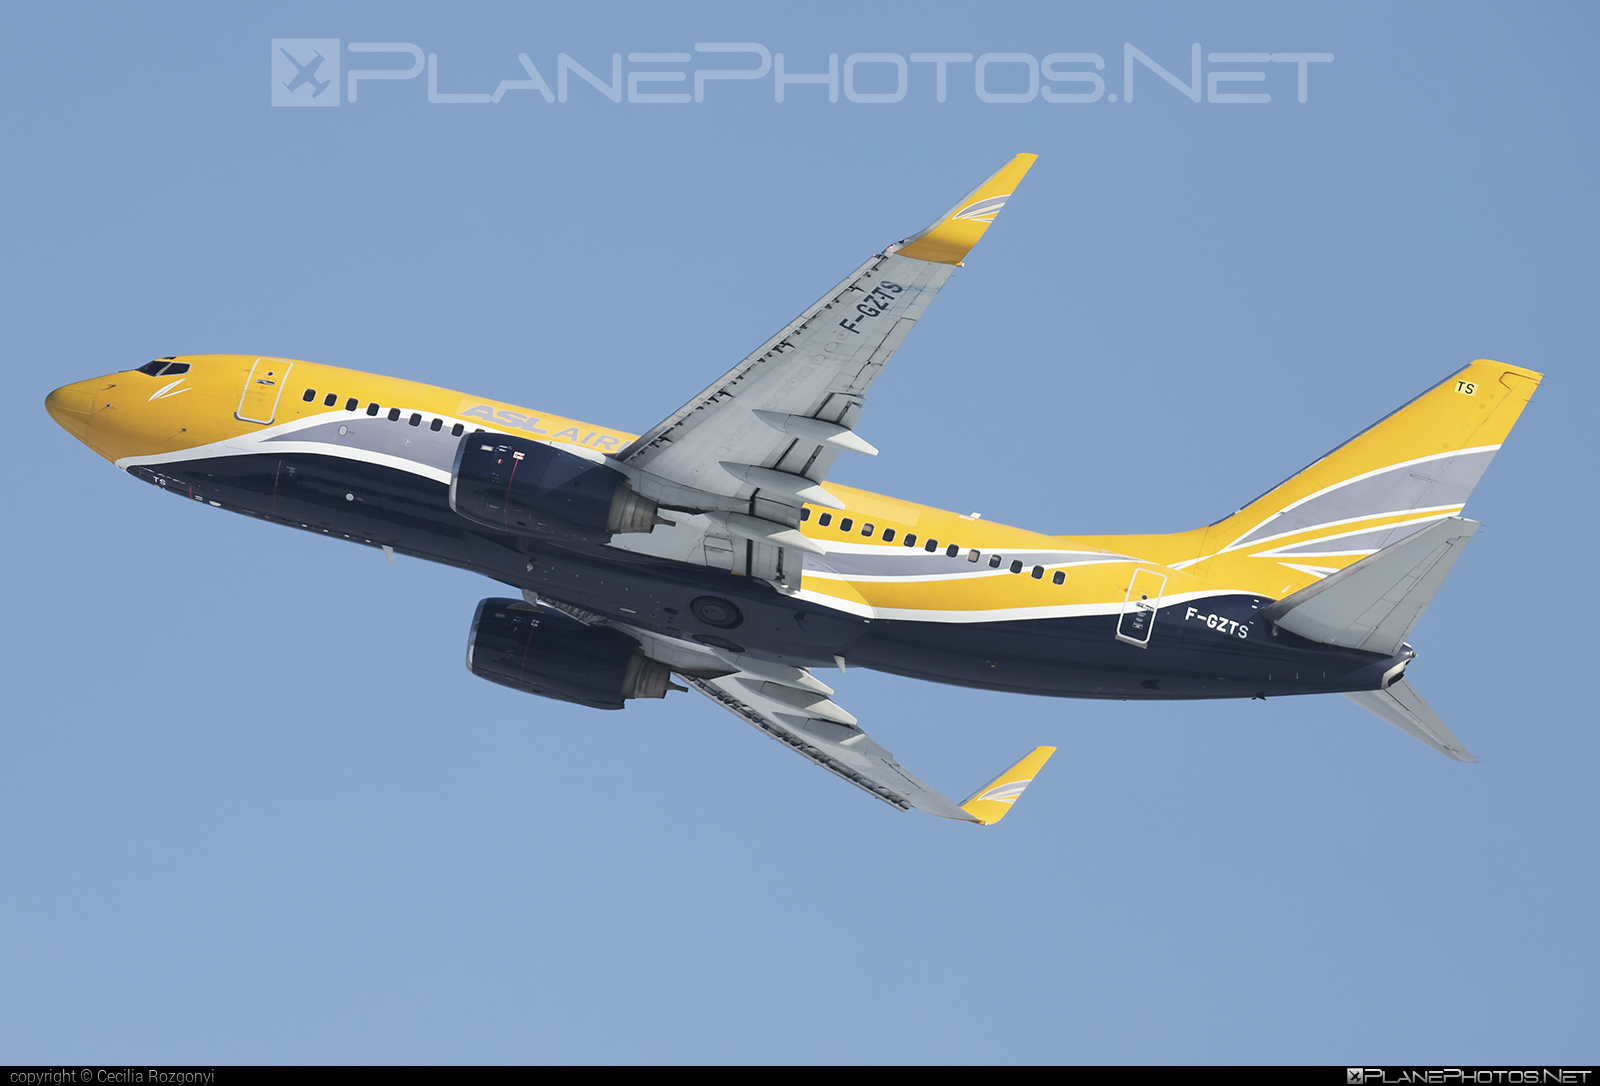 ASL Airlines France Boeing 737-700 - F-GZTS #aslairlines #aslairlinesfrance #b737 #b737nextgen #b737ng #boeing #boeing737